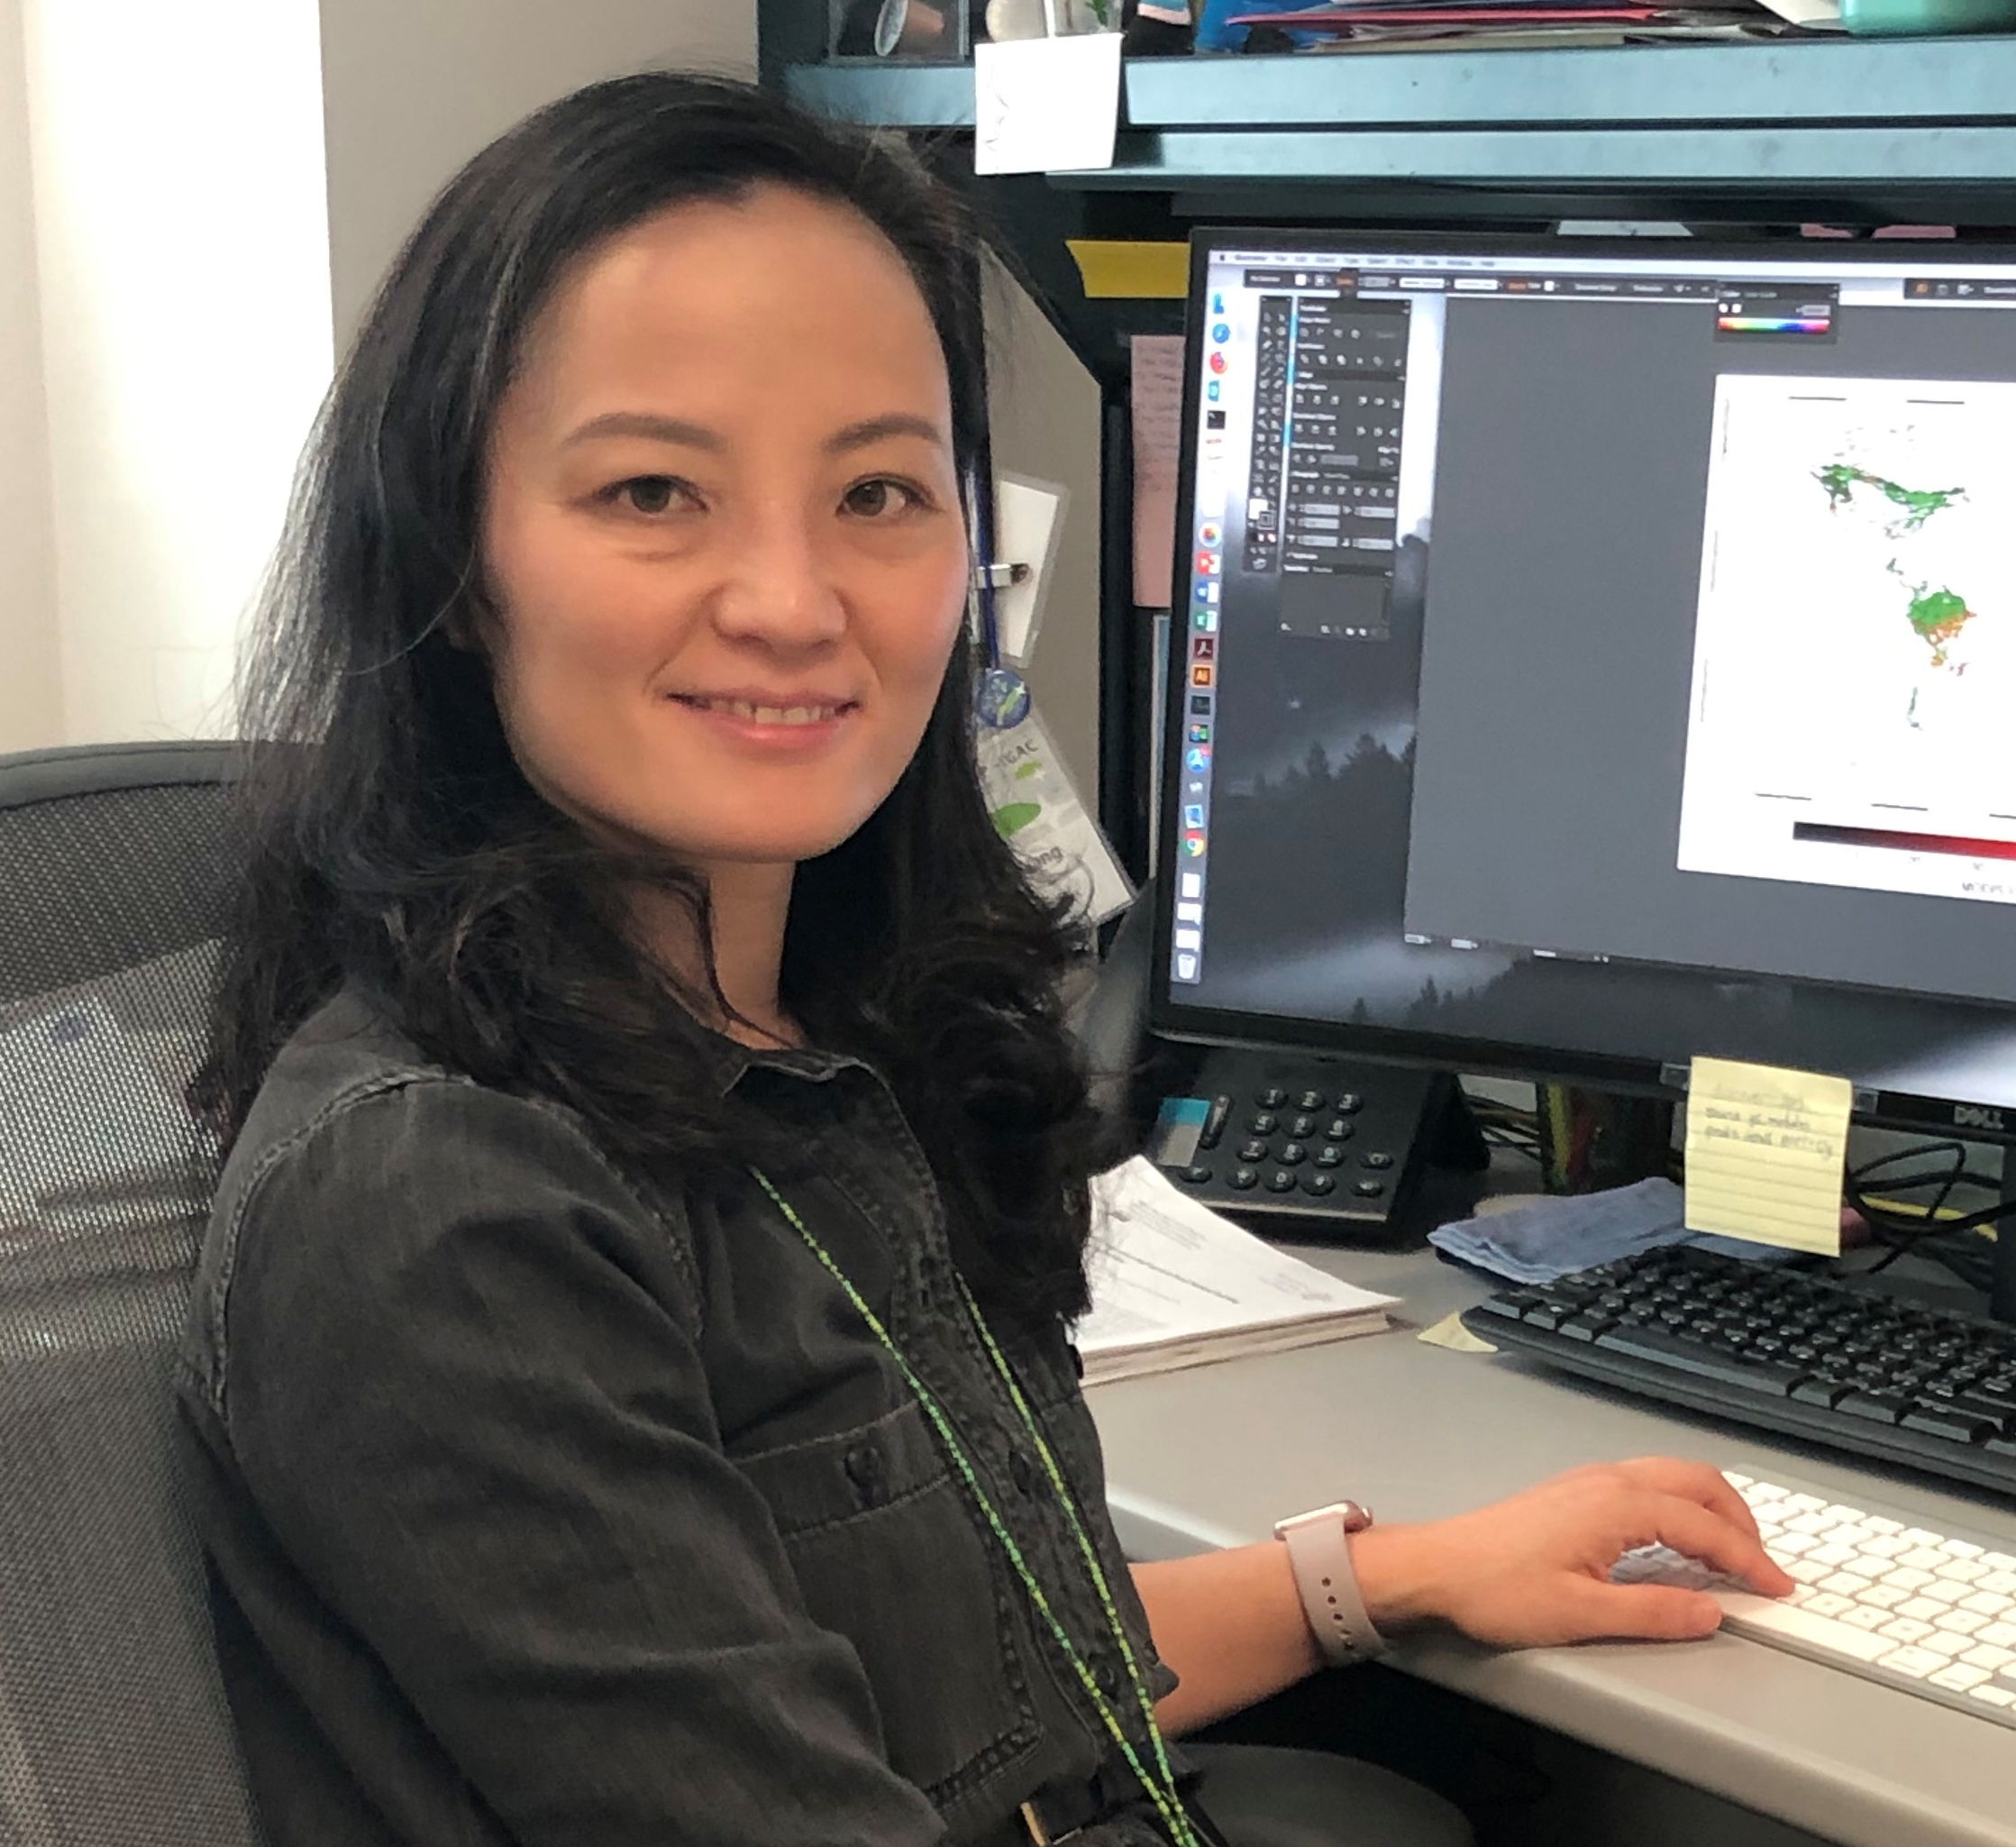 Dr. Qing Liang at her computer.